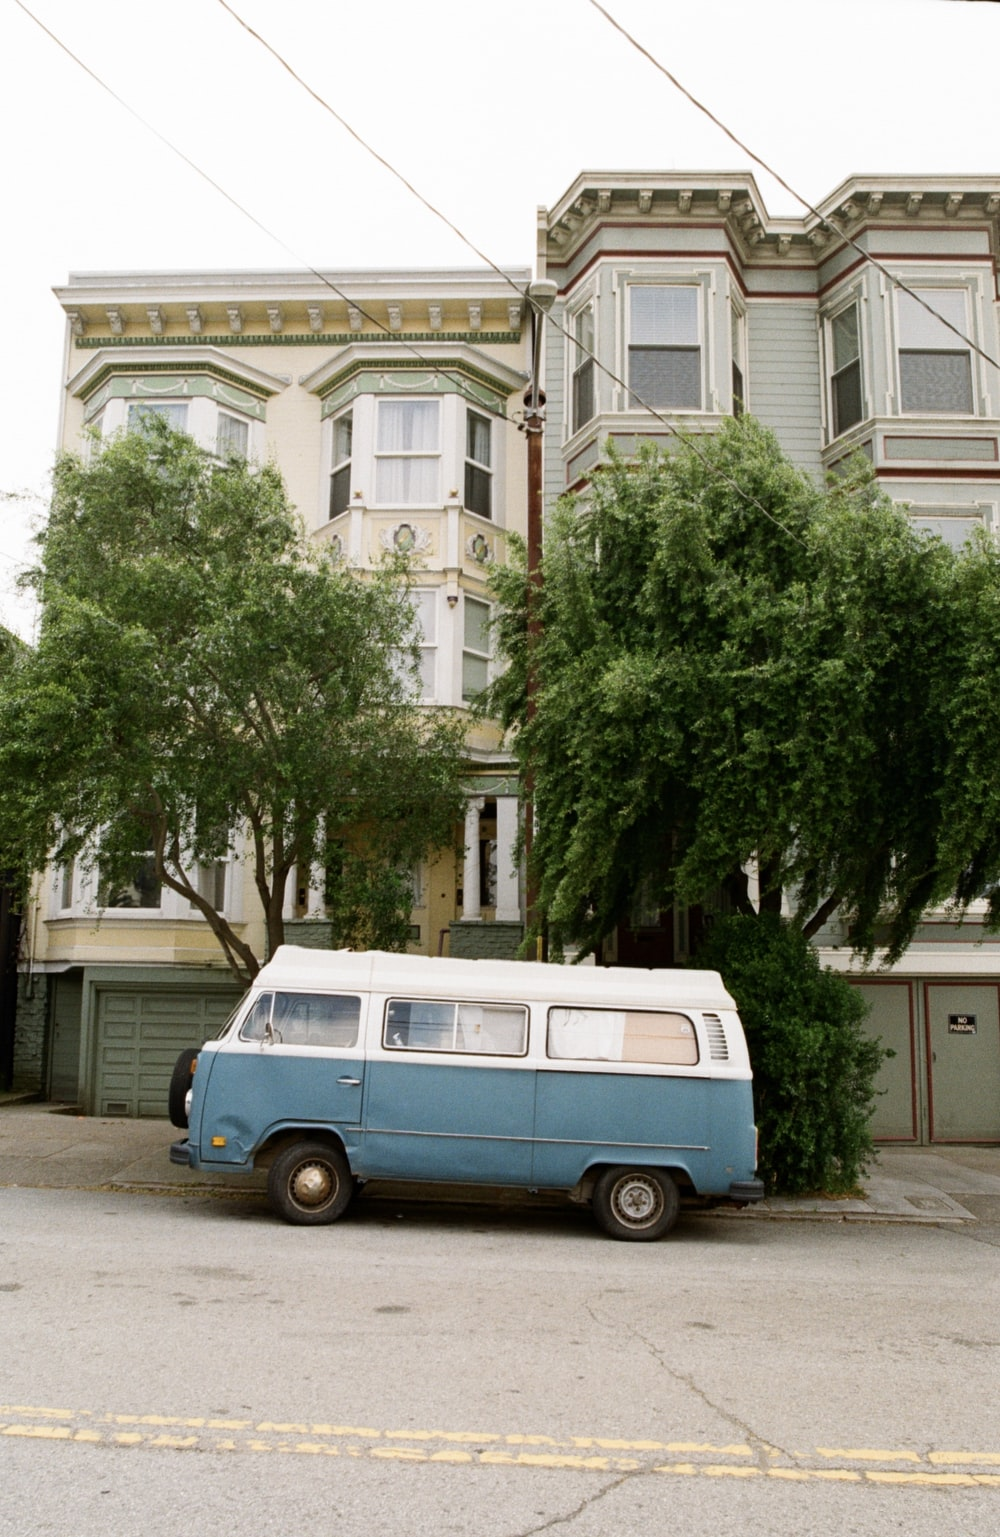 blue and white van near the building